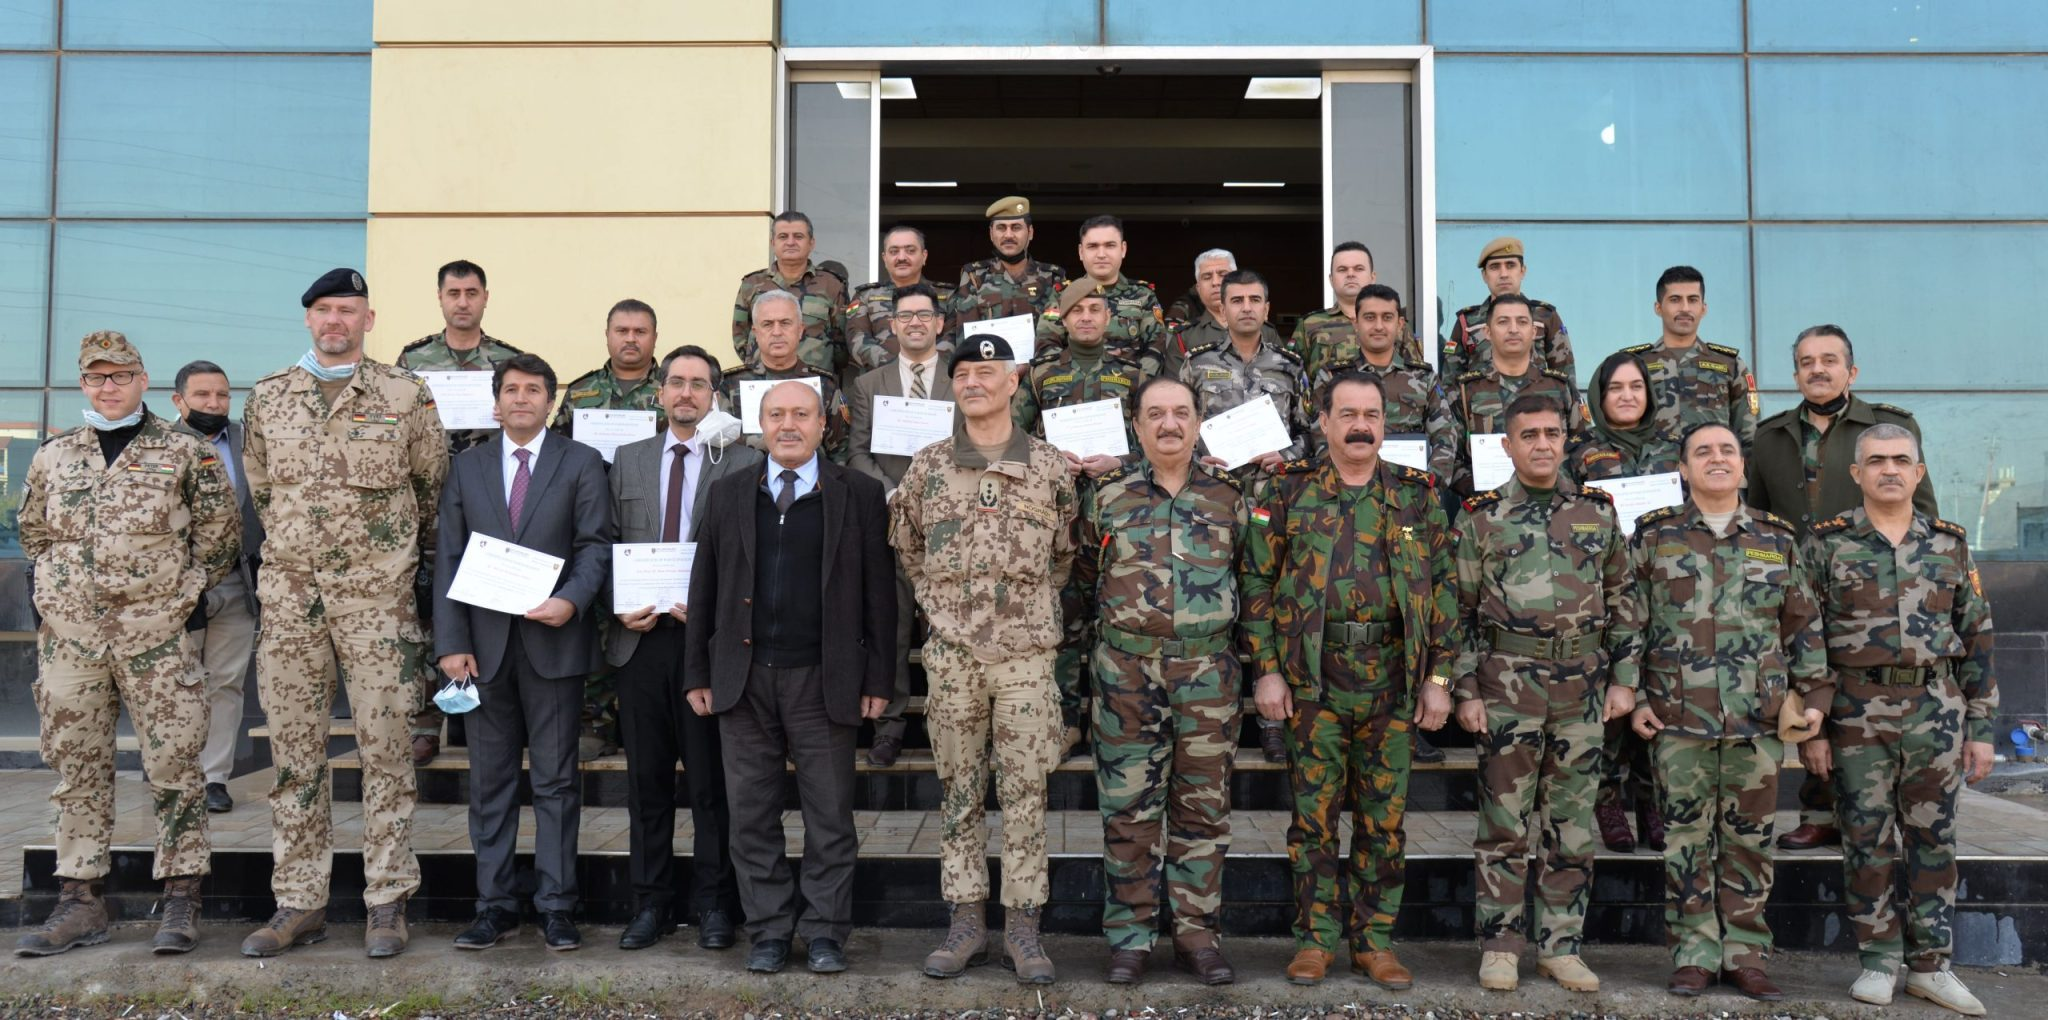 Erbil Polytechnic University fulfills The Project Management Course for The Peshmerga Ministry Officers